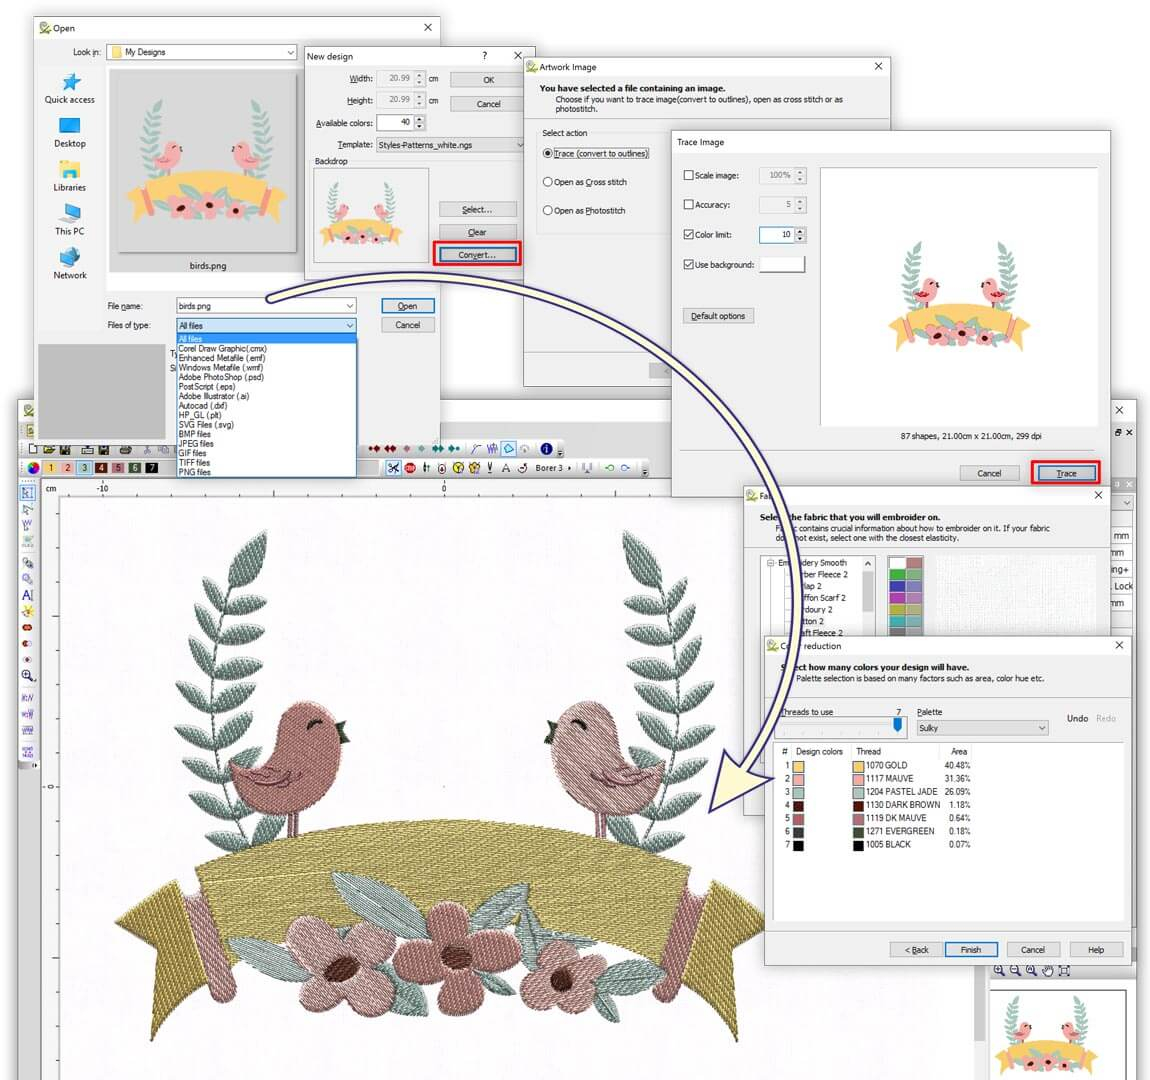 Embroidery Pattern Software Puncher Level Wings Xp Experience 6 Embroidery Software